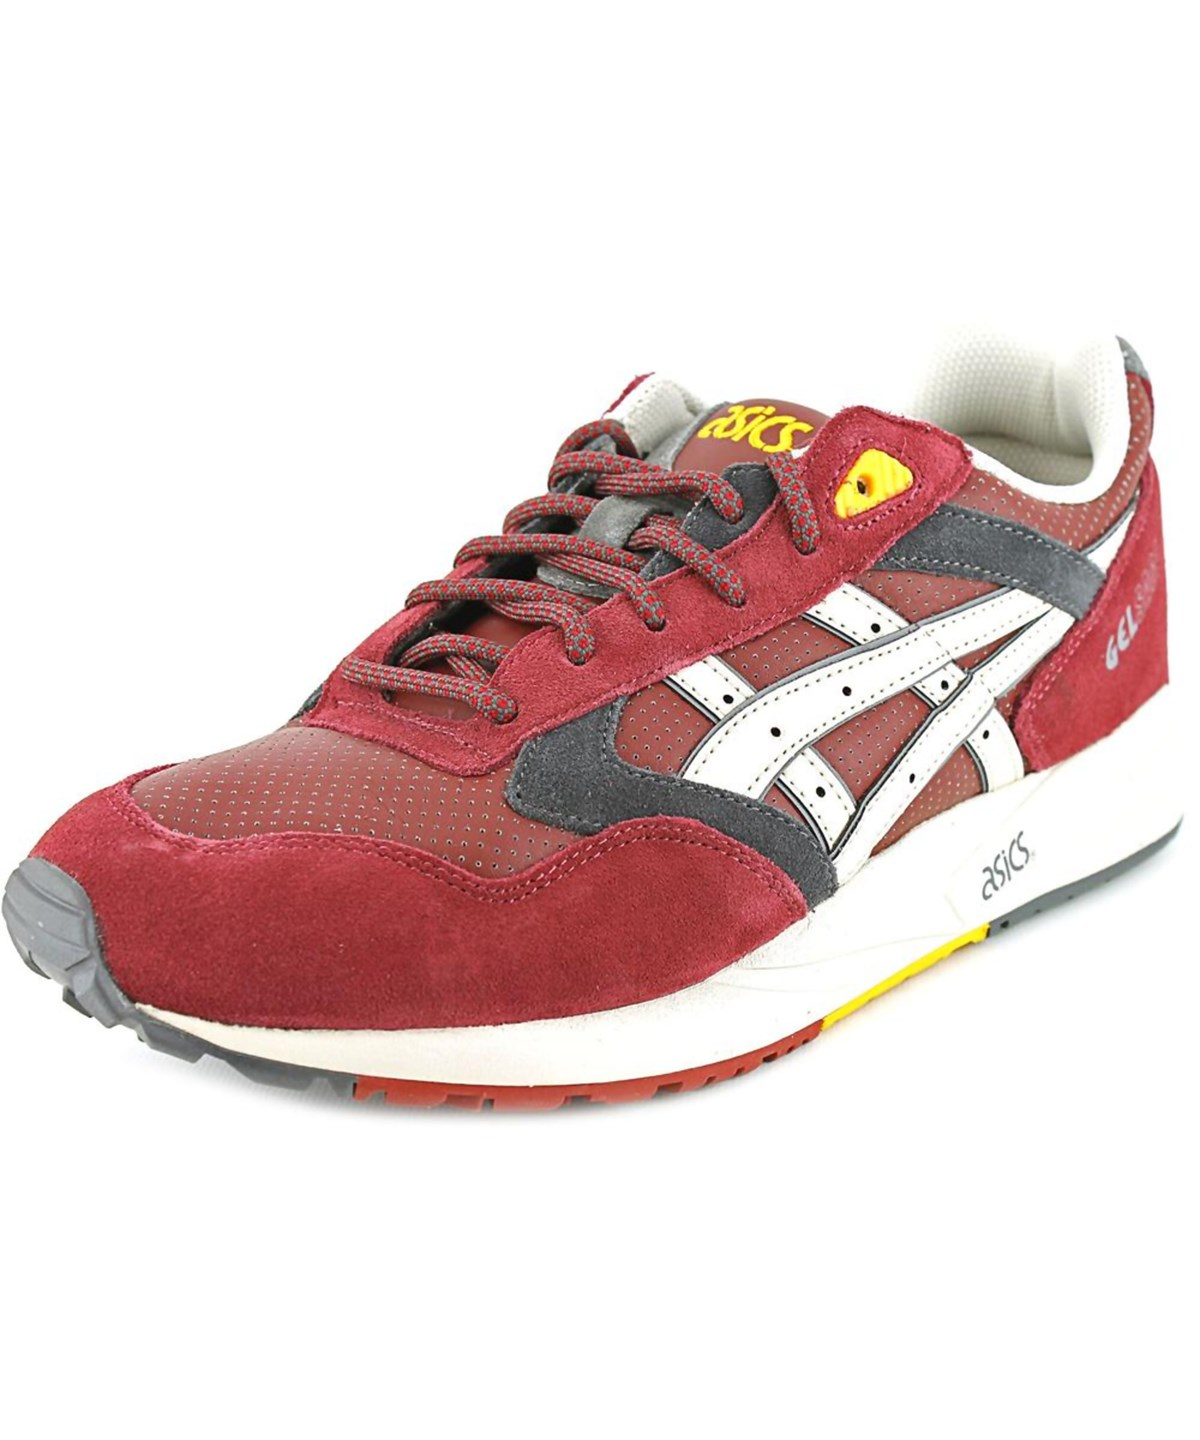 Asics Gel Saga Men Round Toe Suede Walking Shoe, Red